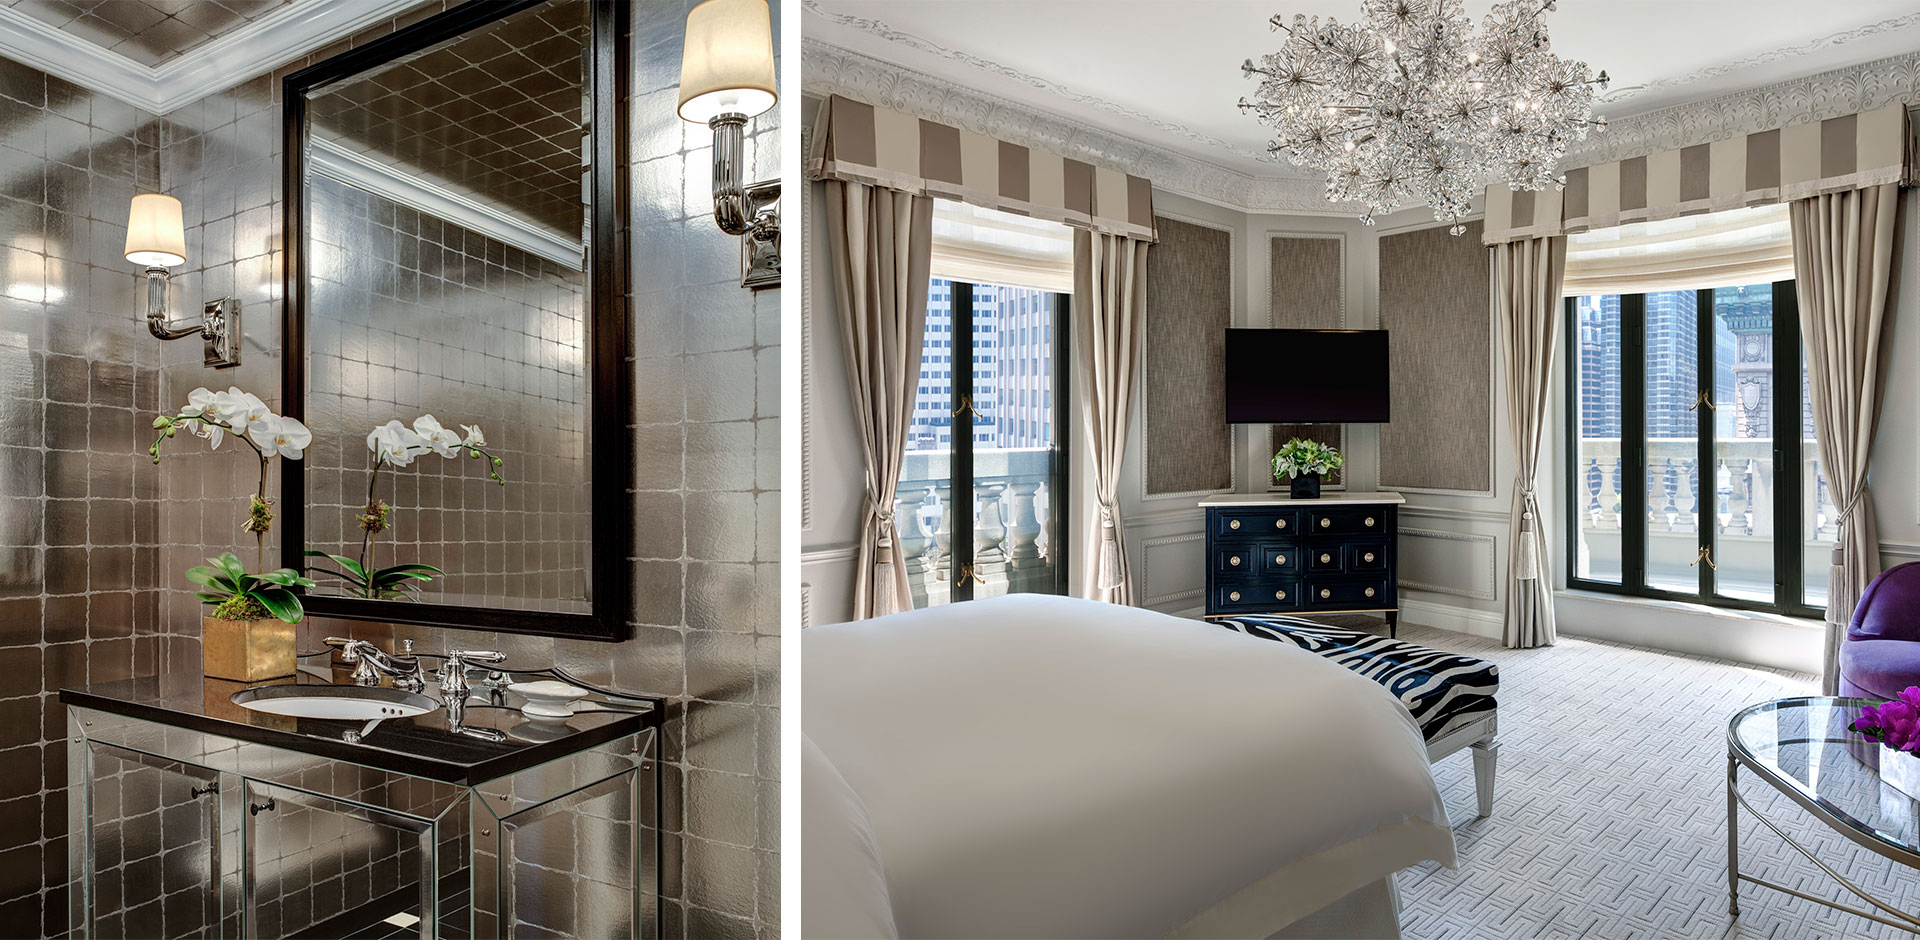 St Regis, New York - Presidential Powder Room and Bedroom